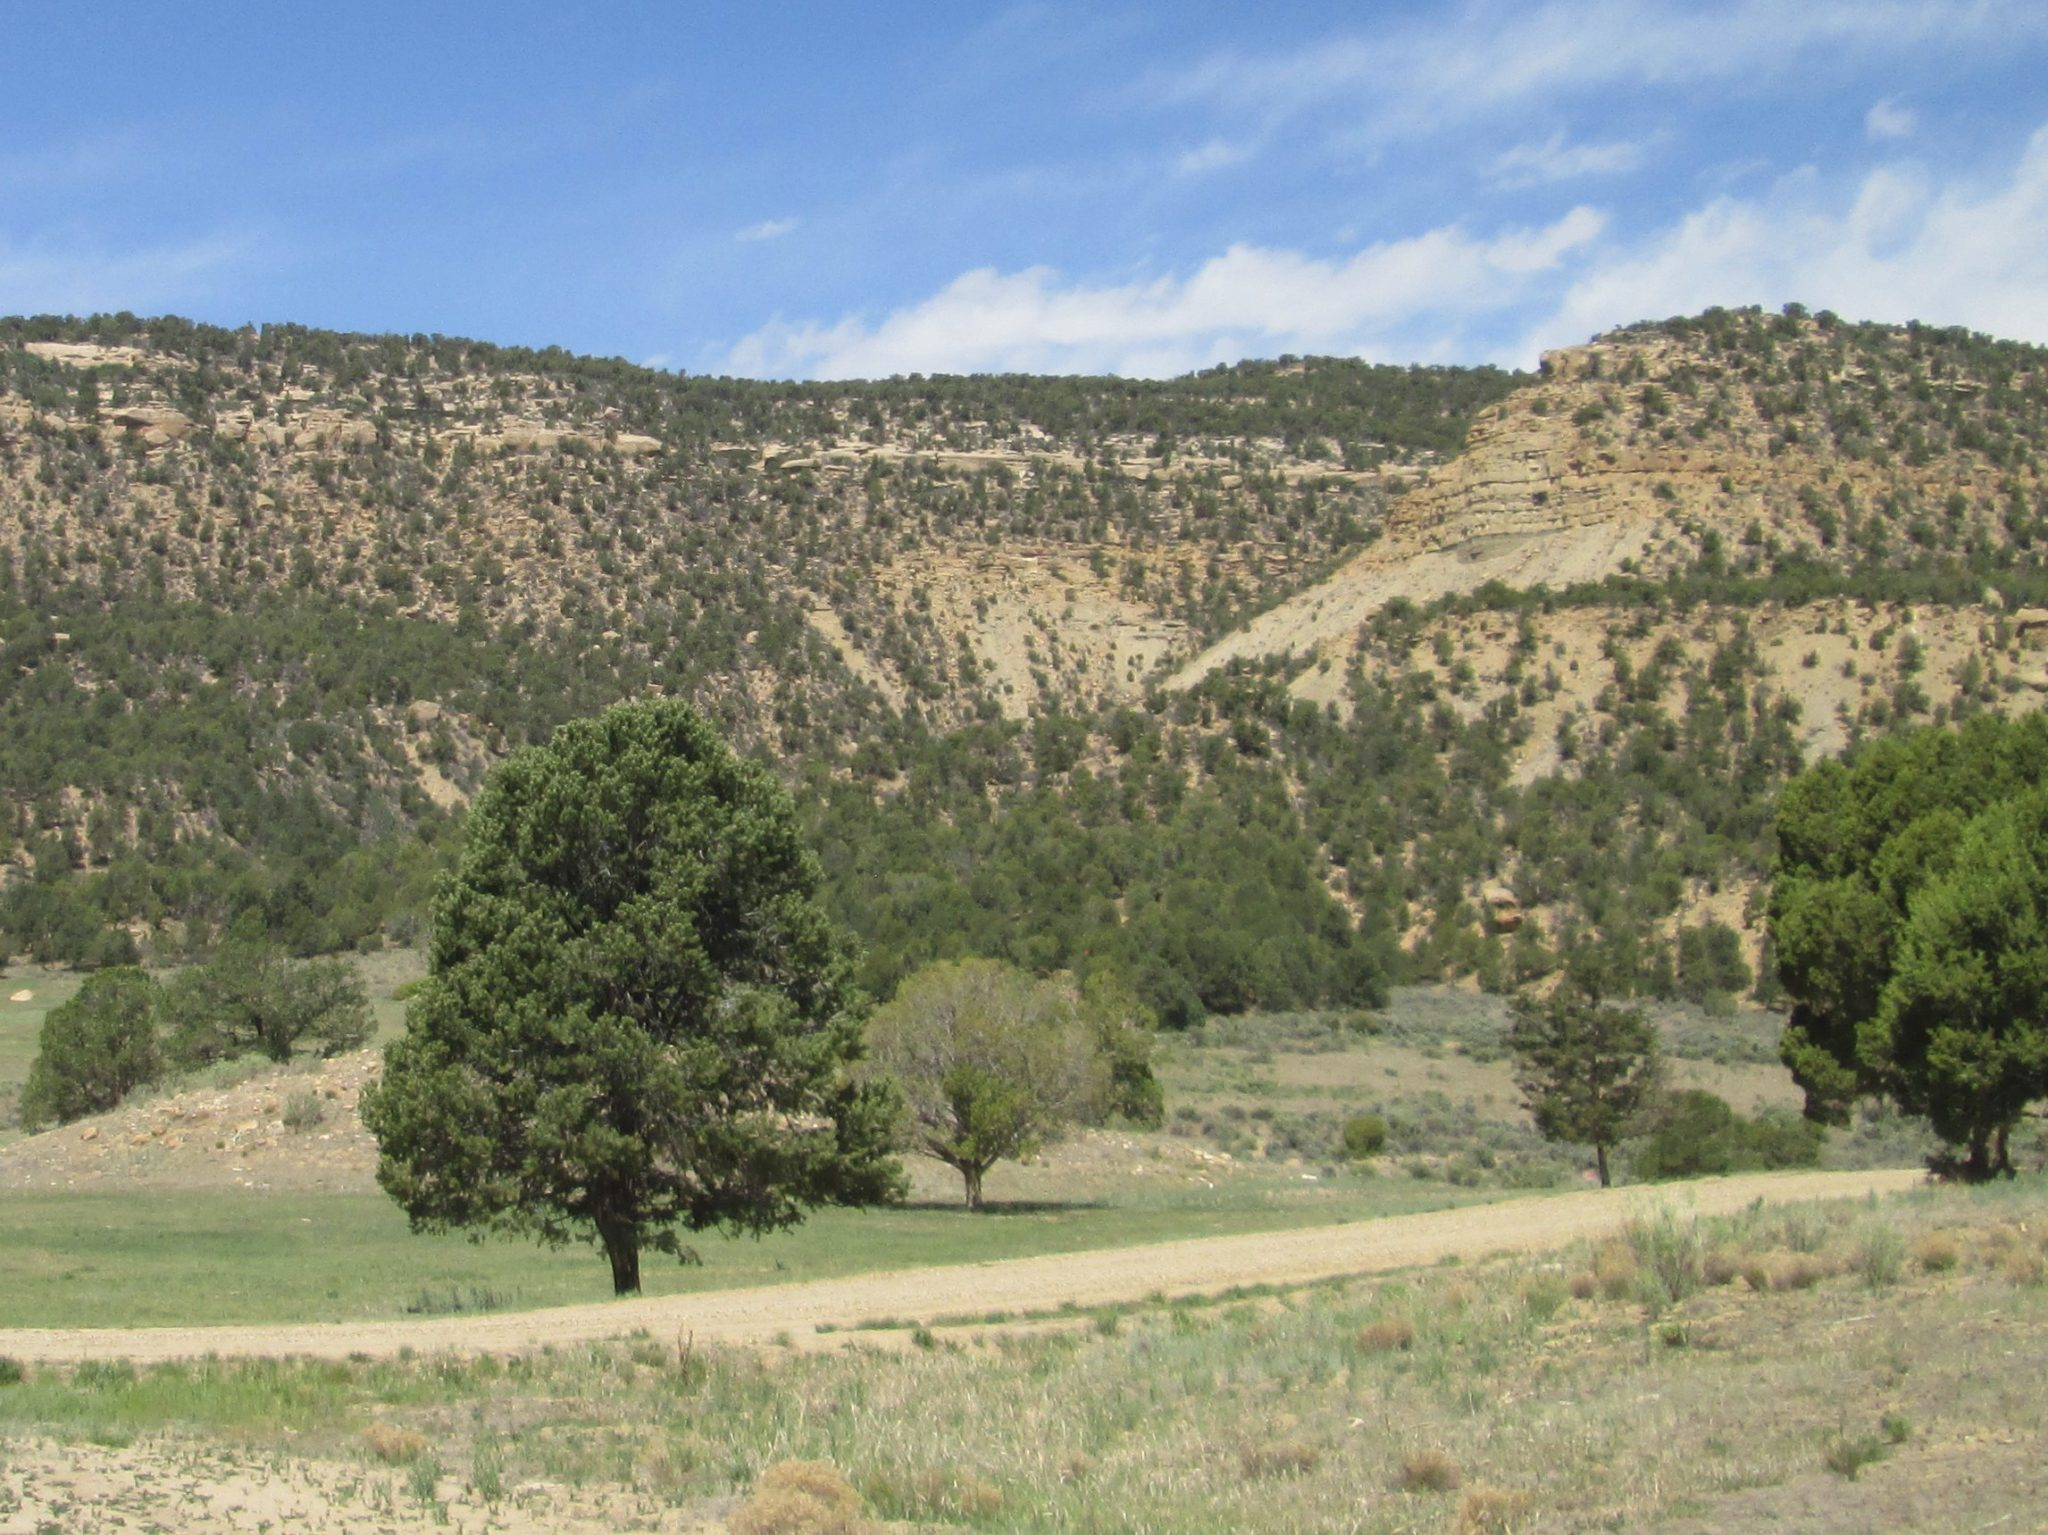 Menefee Mountain and Weber Mountain Wilderness Study Areas